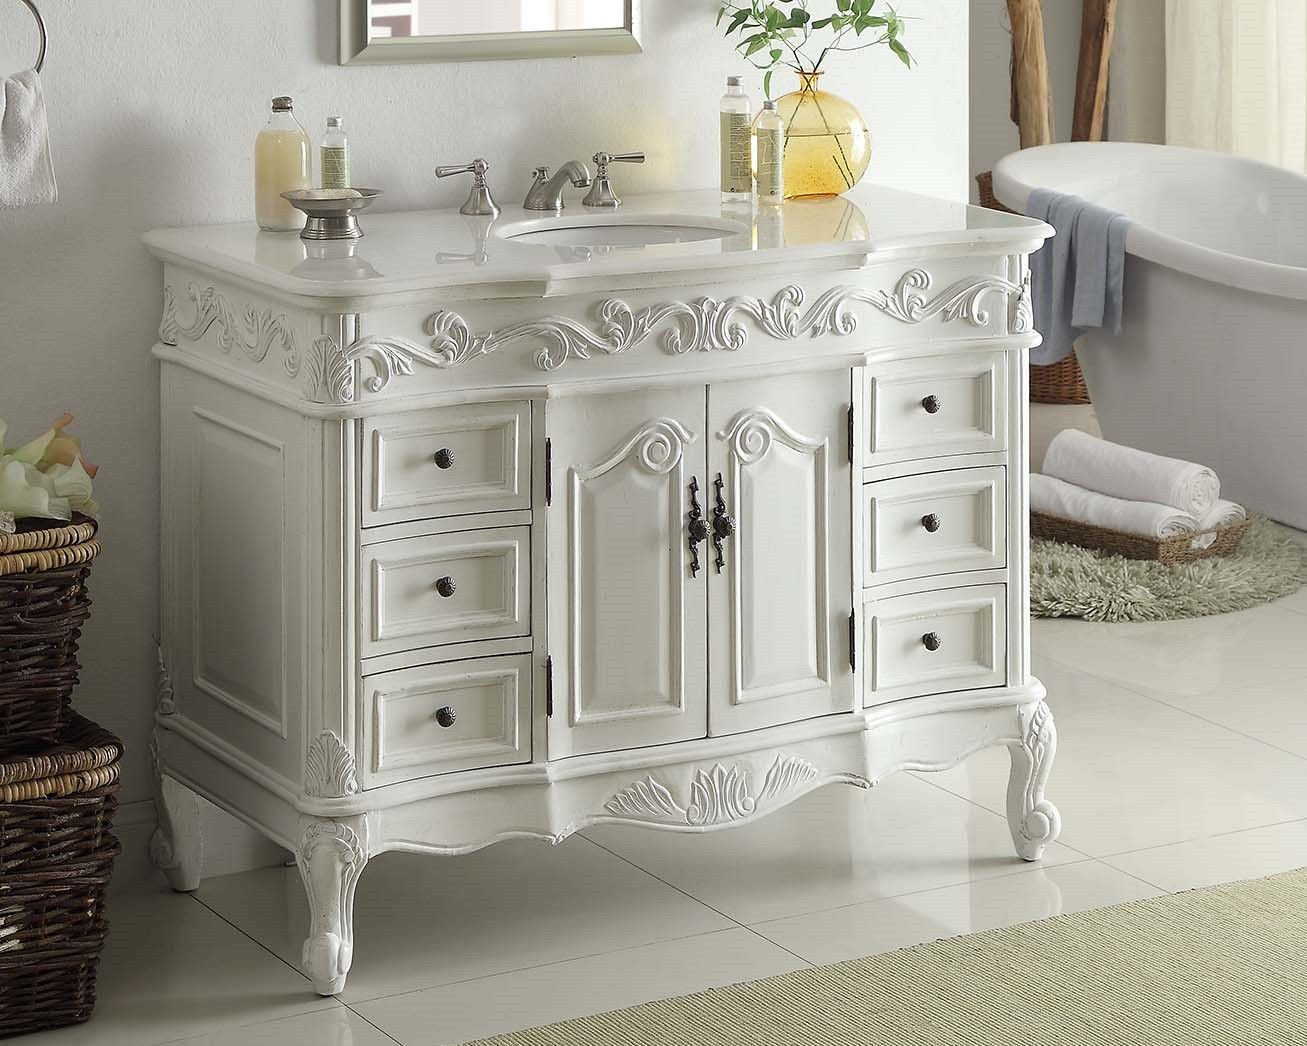 bathroom sink vanity cabinet. 42  Antique White Beckham Bathroom sink vanity Cabinet Mirror SW 3882W AW Amazon com